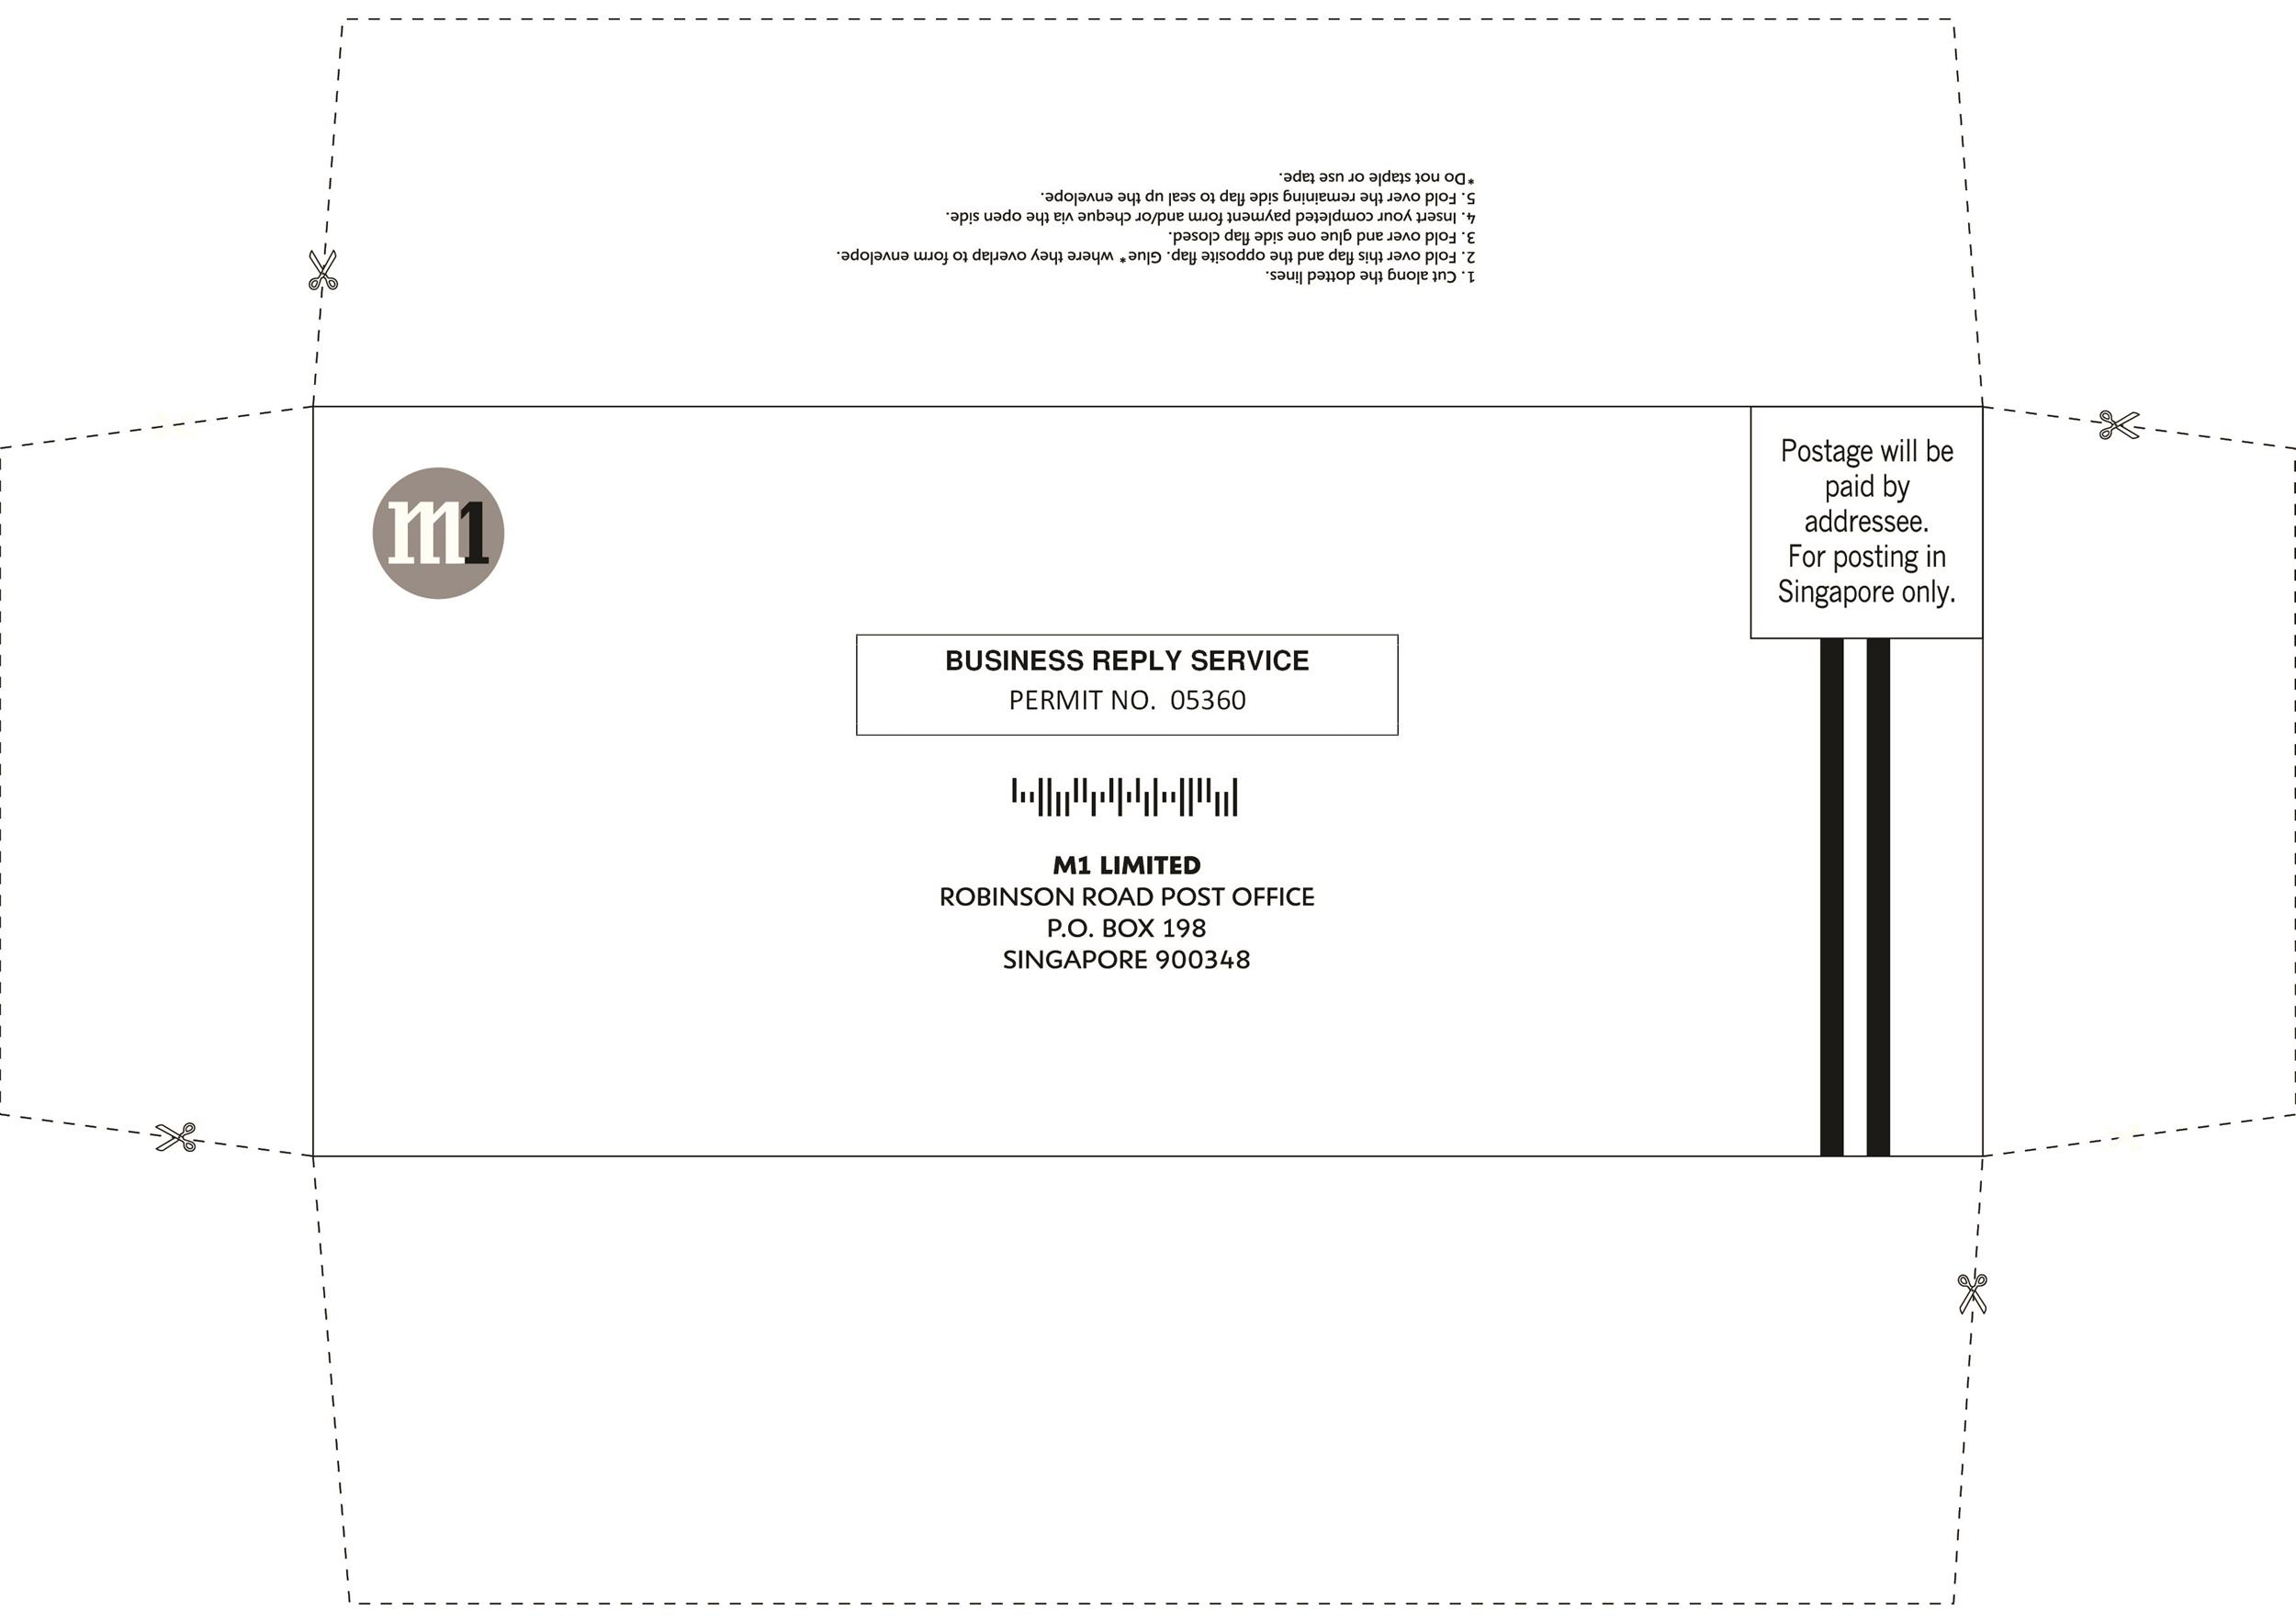 004 Excellent 5x7 Envelope Template Word Photo  Microsoft FreeFull